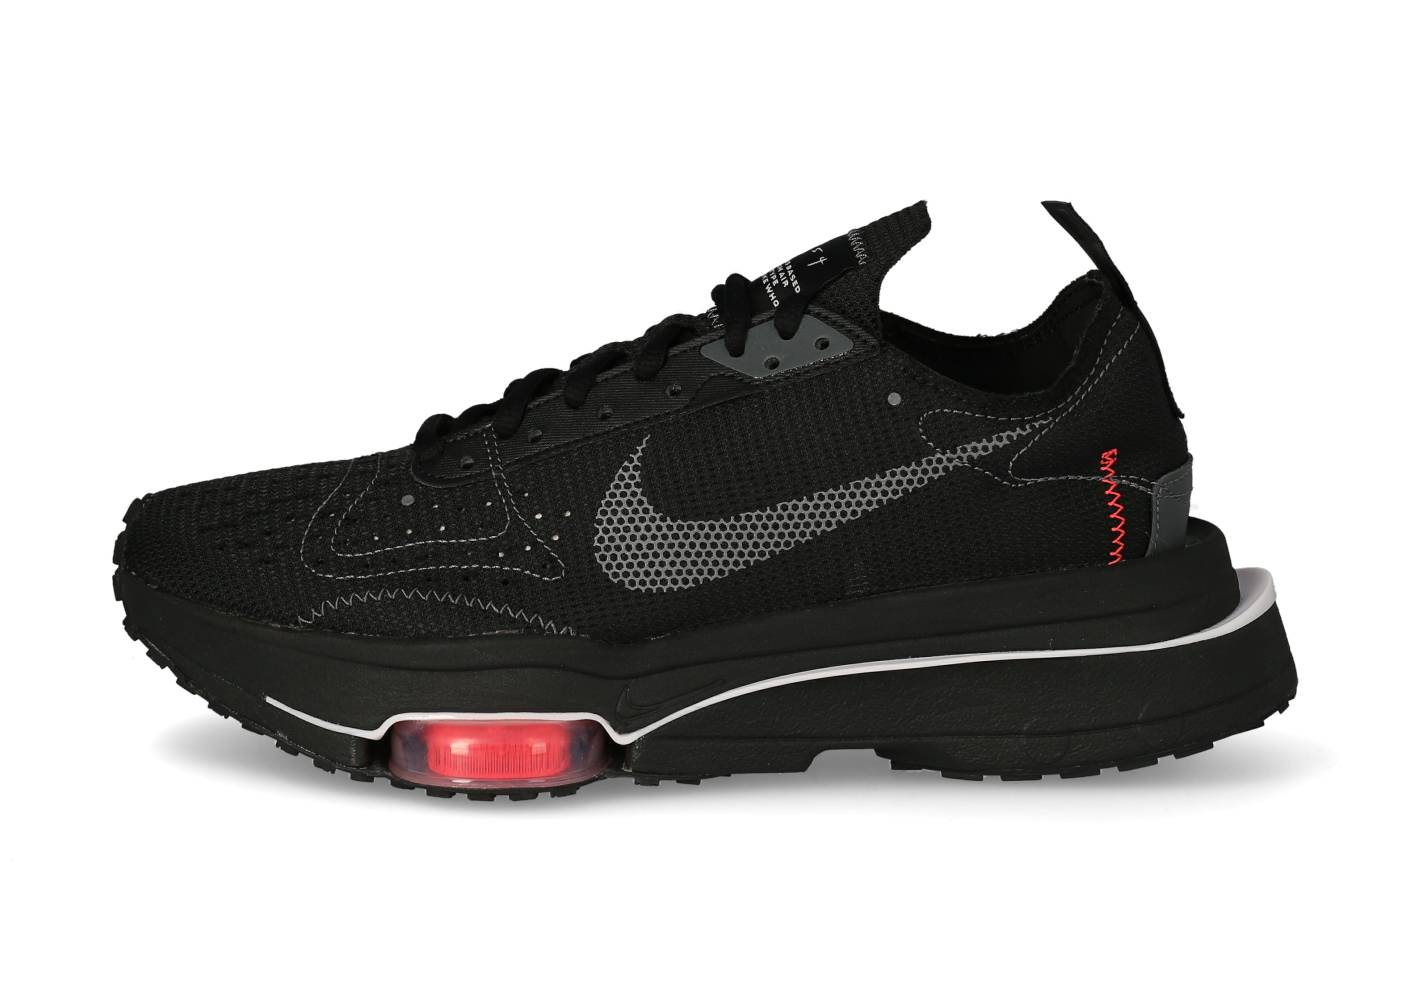 Nike Homme Air Zoom-type Noire Et Anthracite Rétro-Running 46